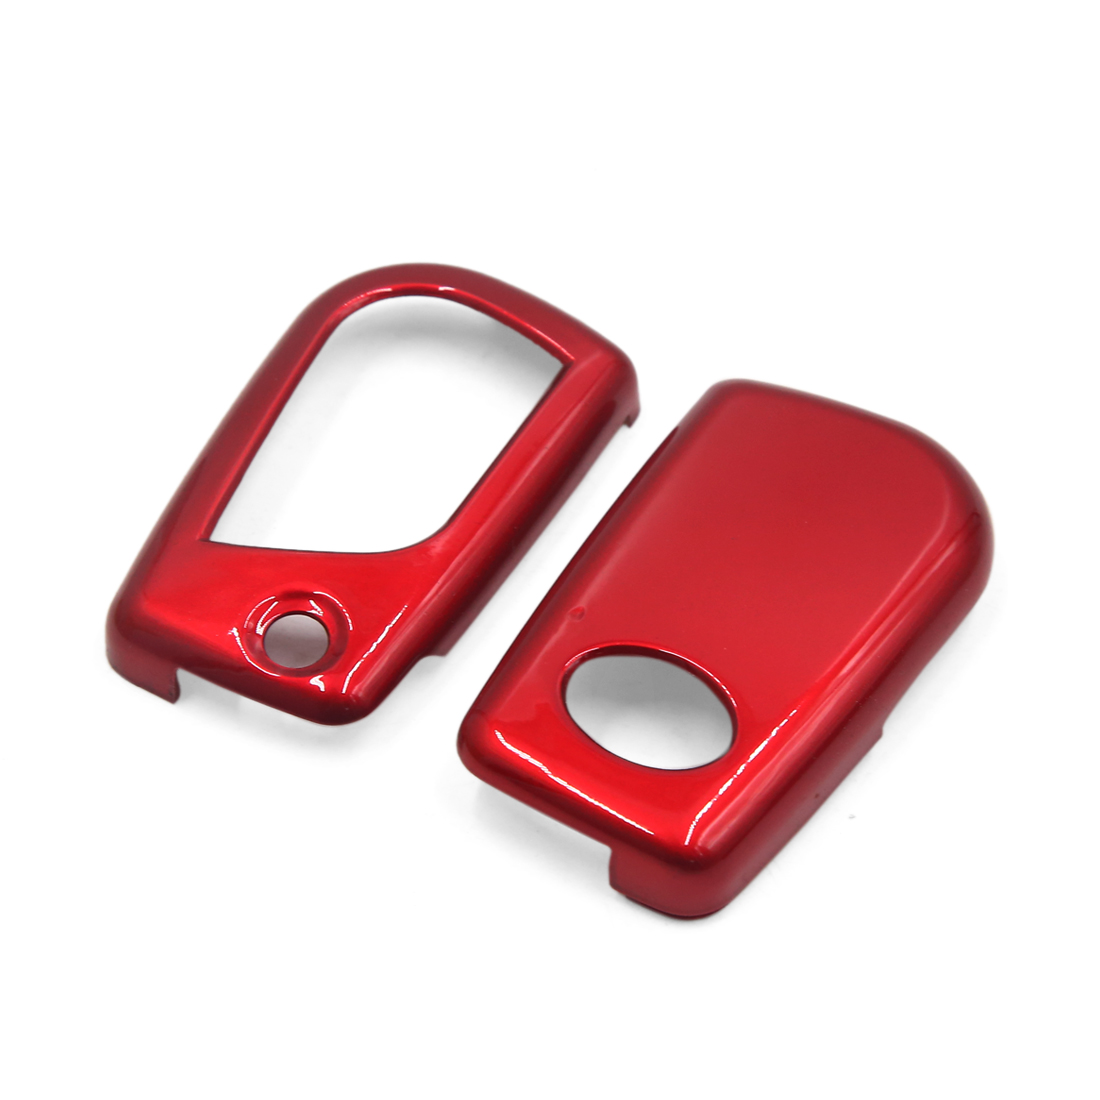 Red ABS Plastic Remote Key Case Protector Cover for Toyota Reiz RAV4 Camry